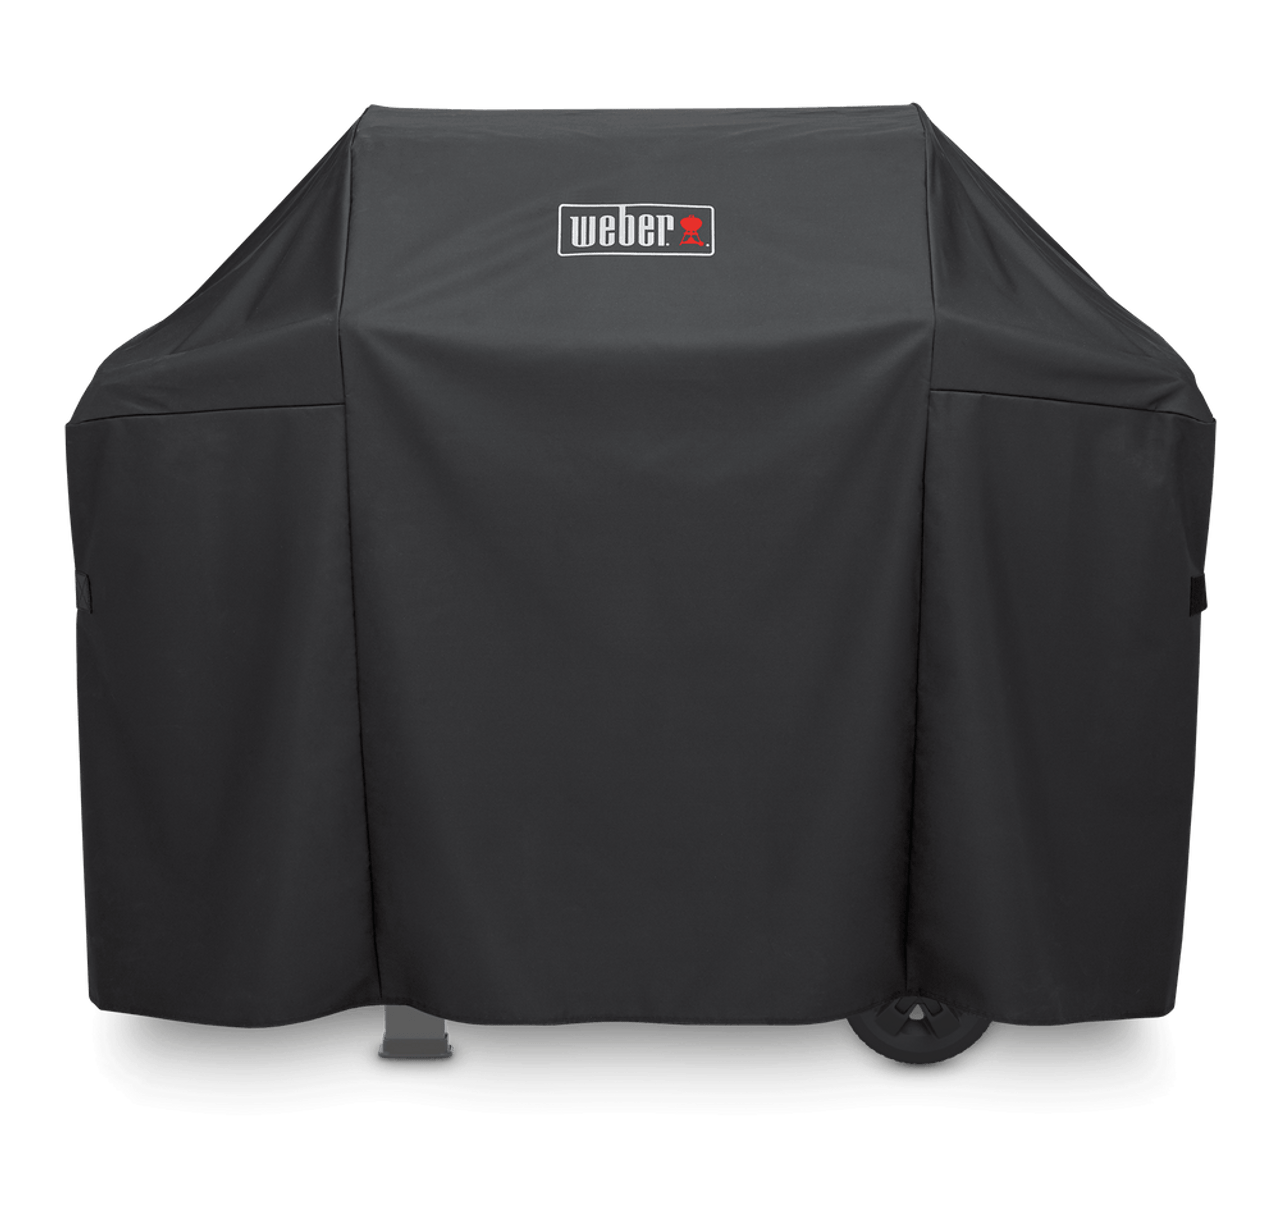 Weber Premium Grill Cover - Fits Spirit 11 300